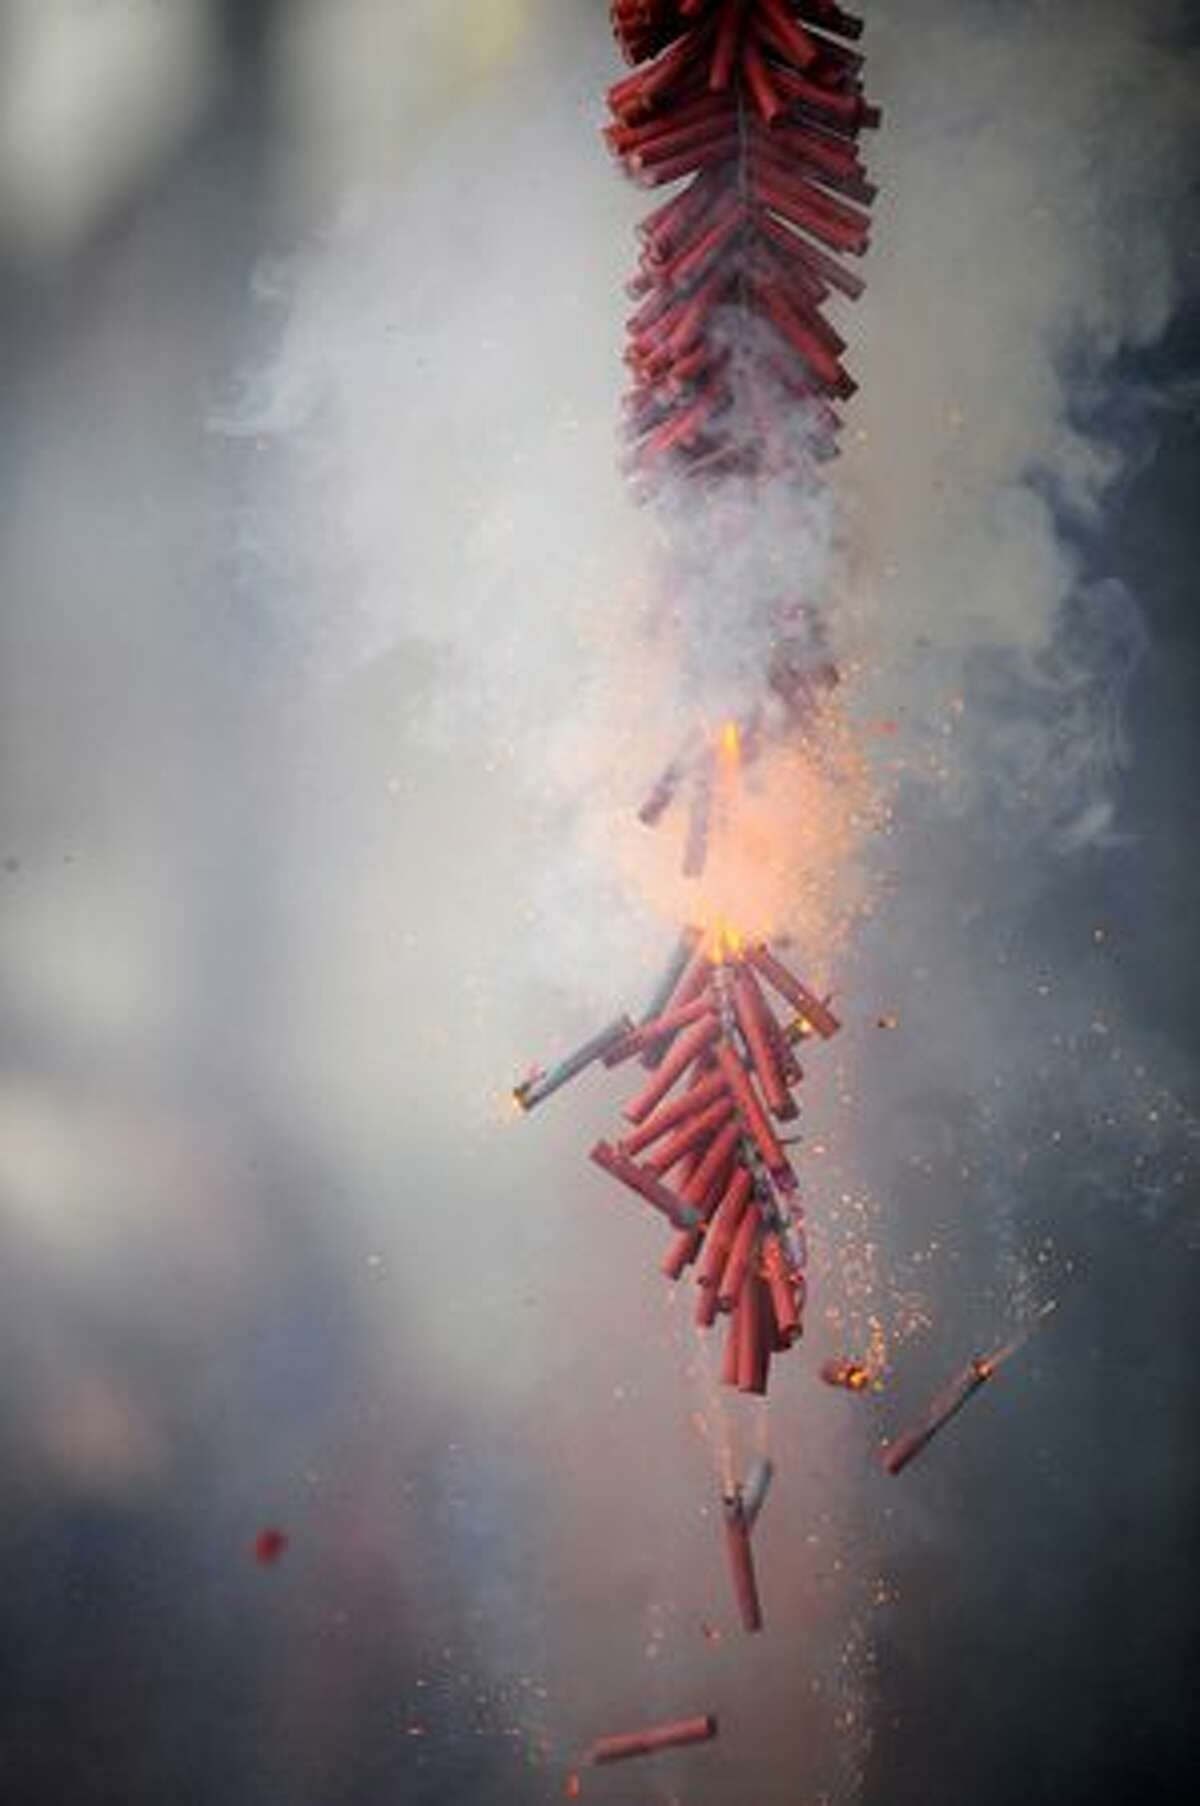 Firecrackers go off during the Lunar New Year celebration in Seattle's International District Feb. 13, 2010.